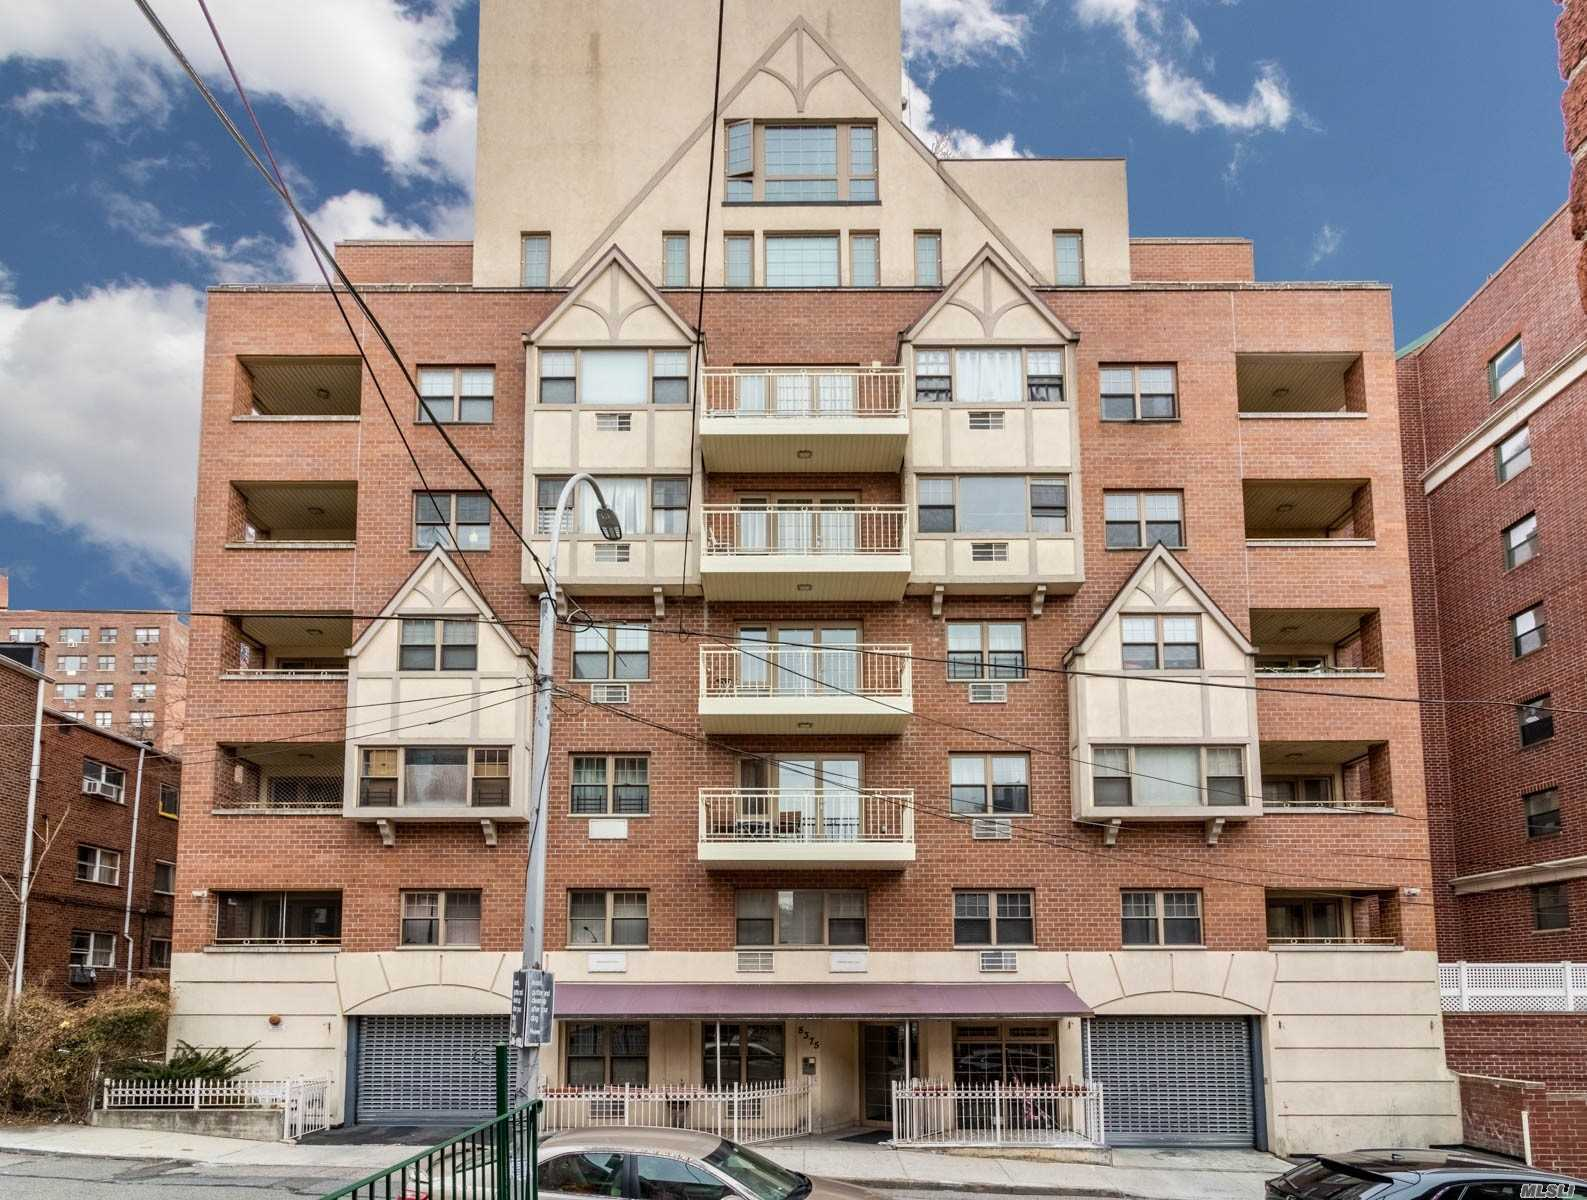 Property for sale at 83-75 117th Street # 1A, Kew Gardens NY 11415, Kew Gardens,  New York 11415